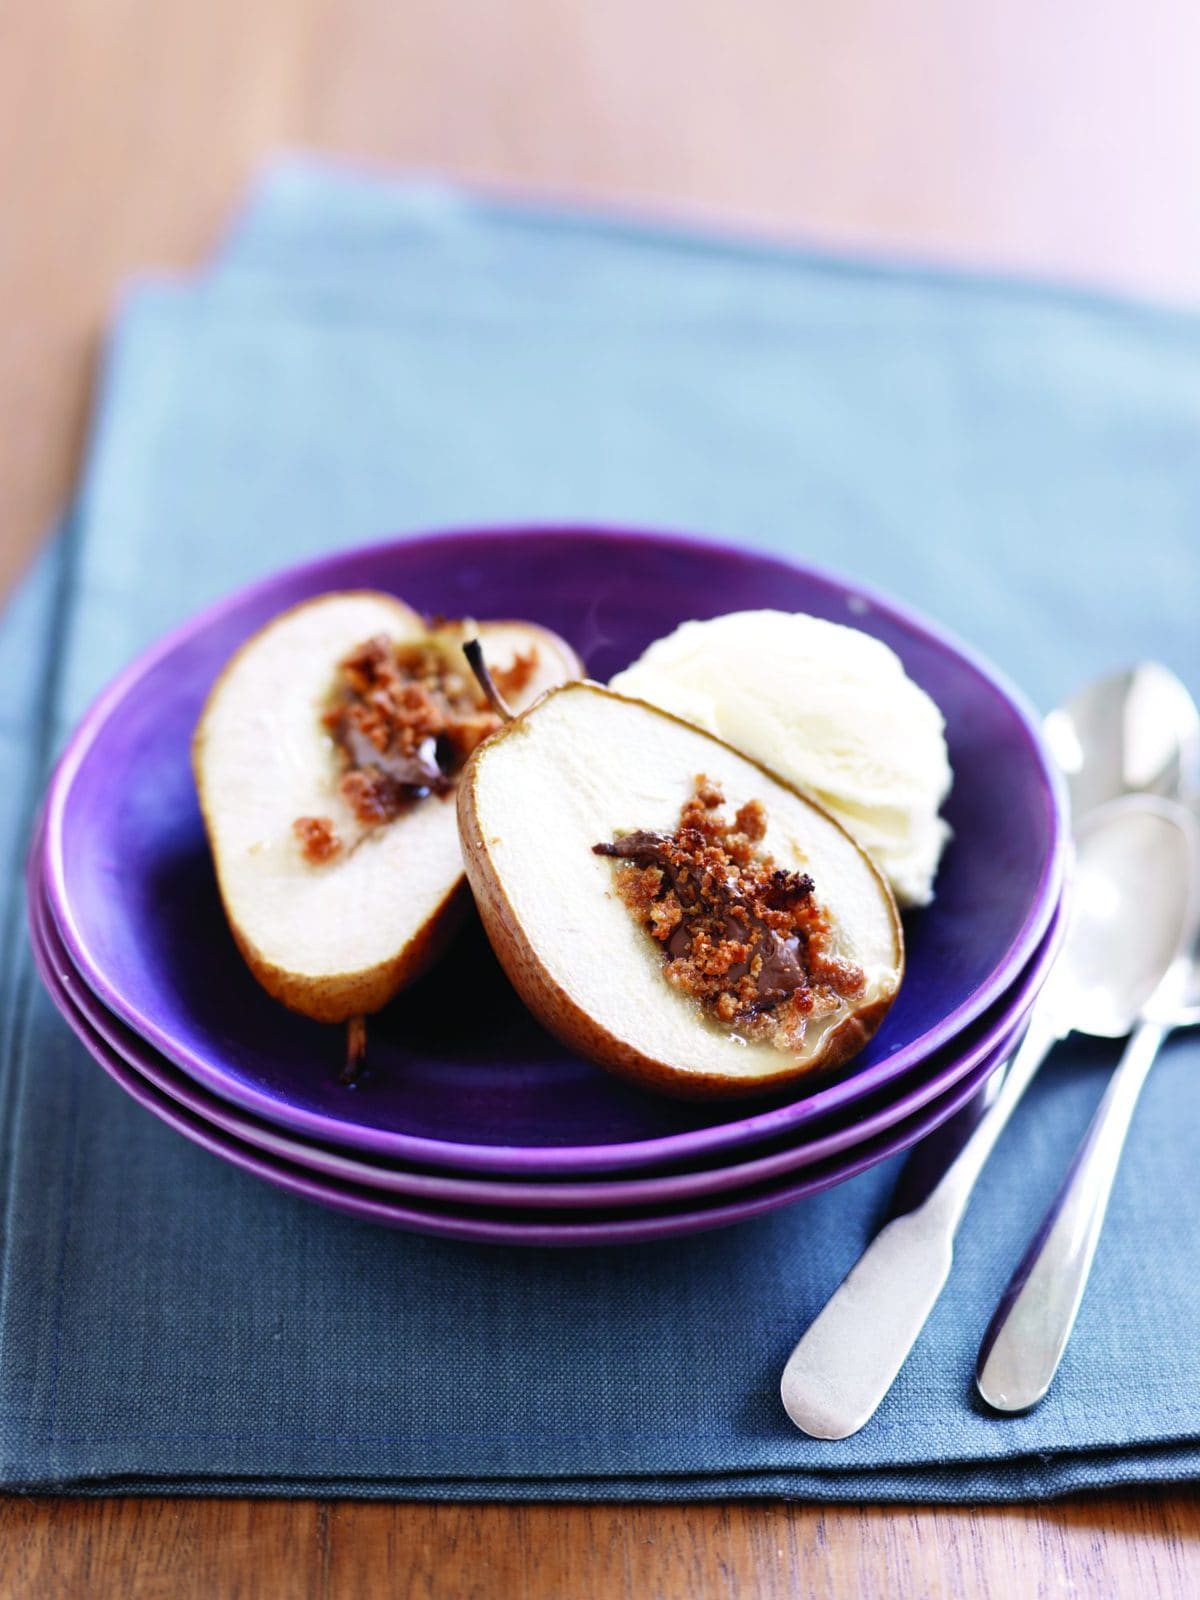 Chocolate-baked pears